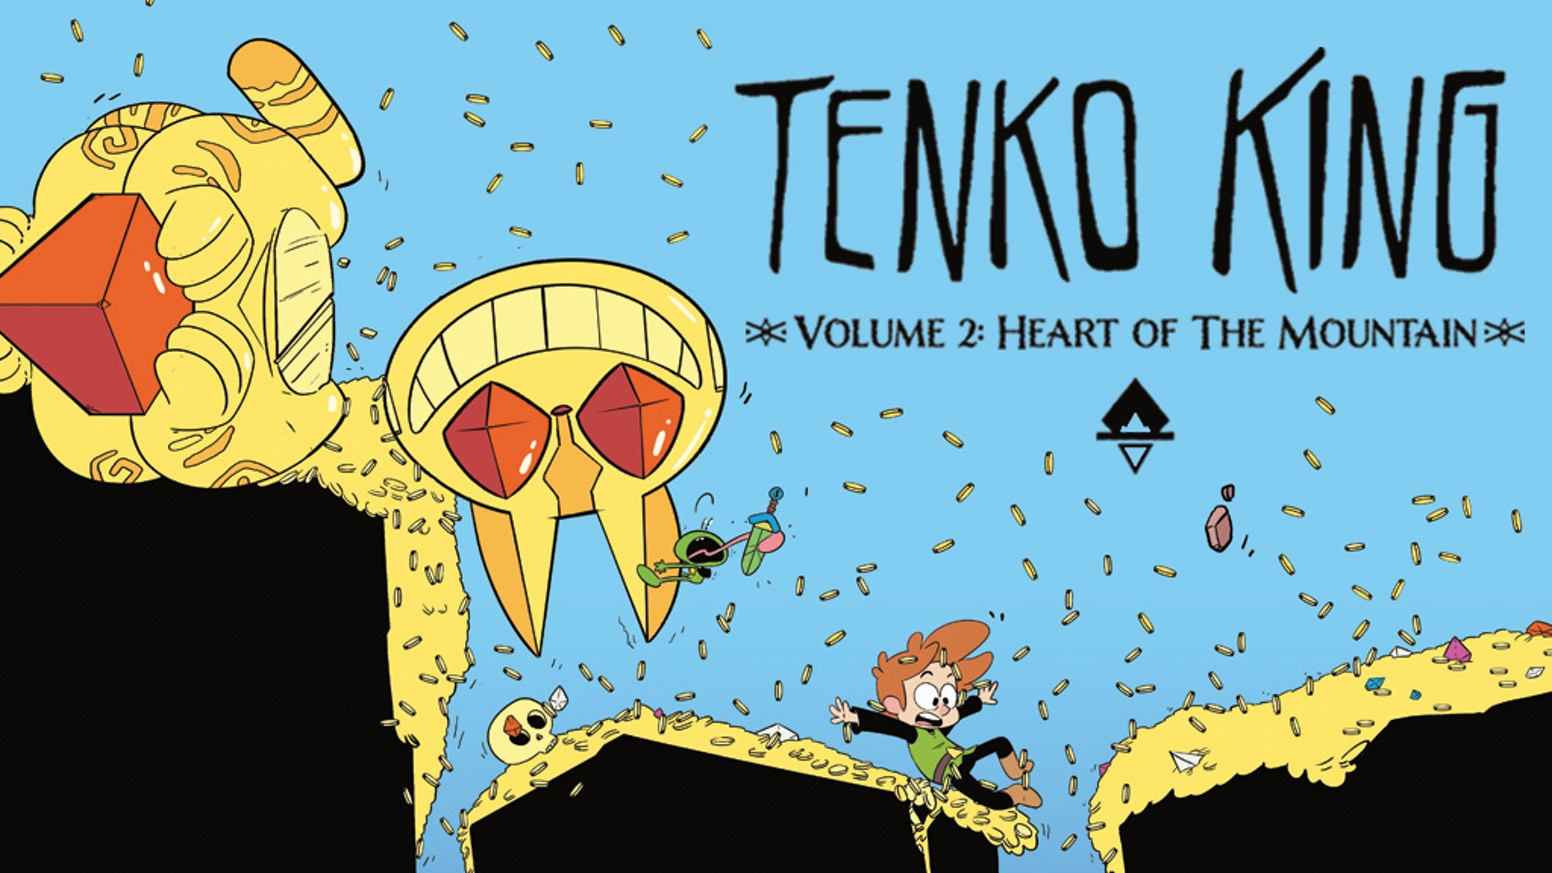 A High Seas Pirate adventure, Treasure, Trouble, Monsters & Magic! The next chapter in the Tenko King series.